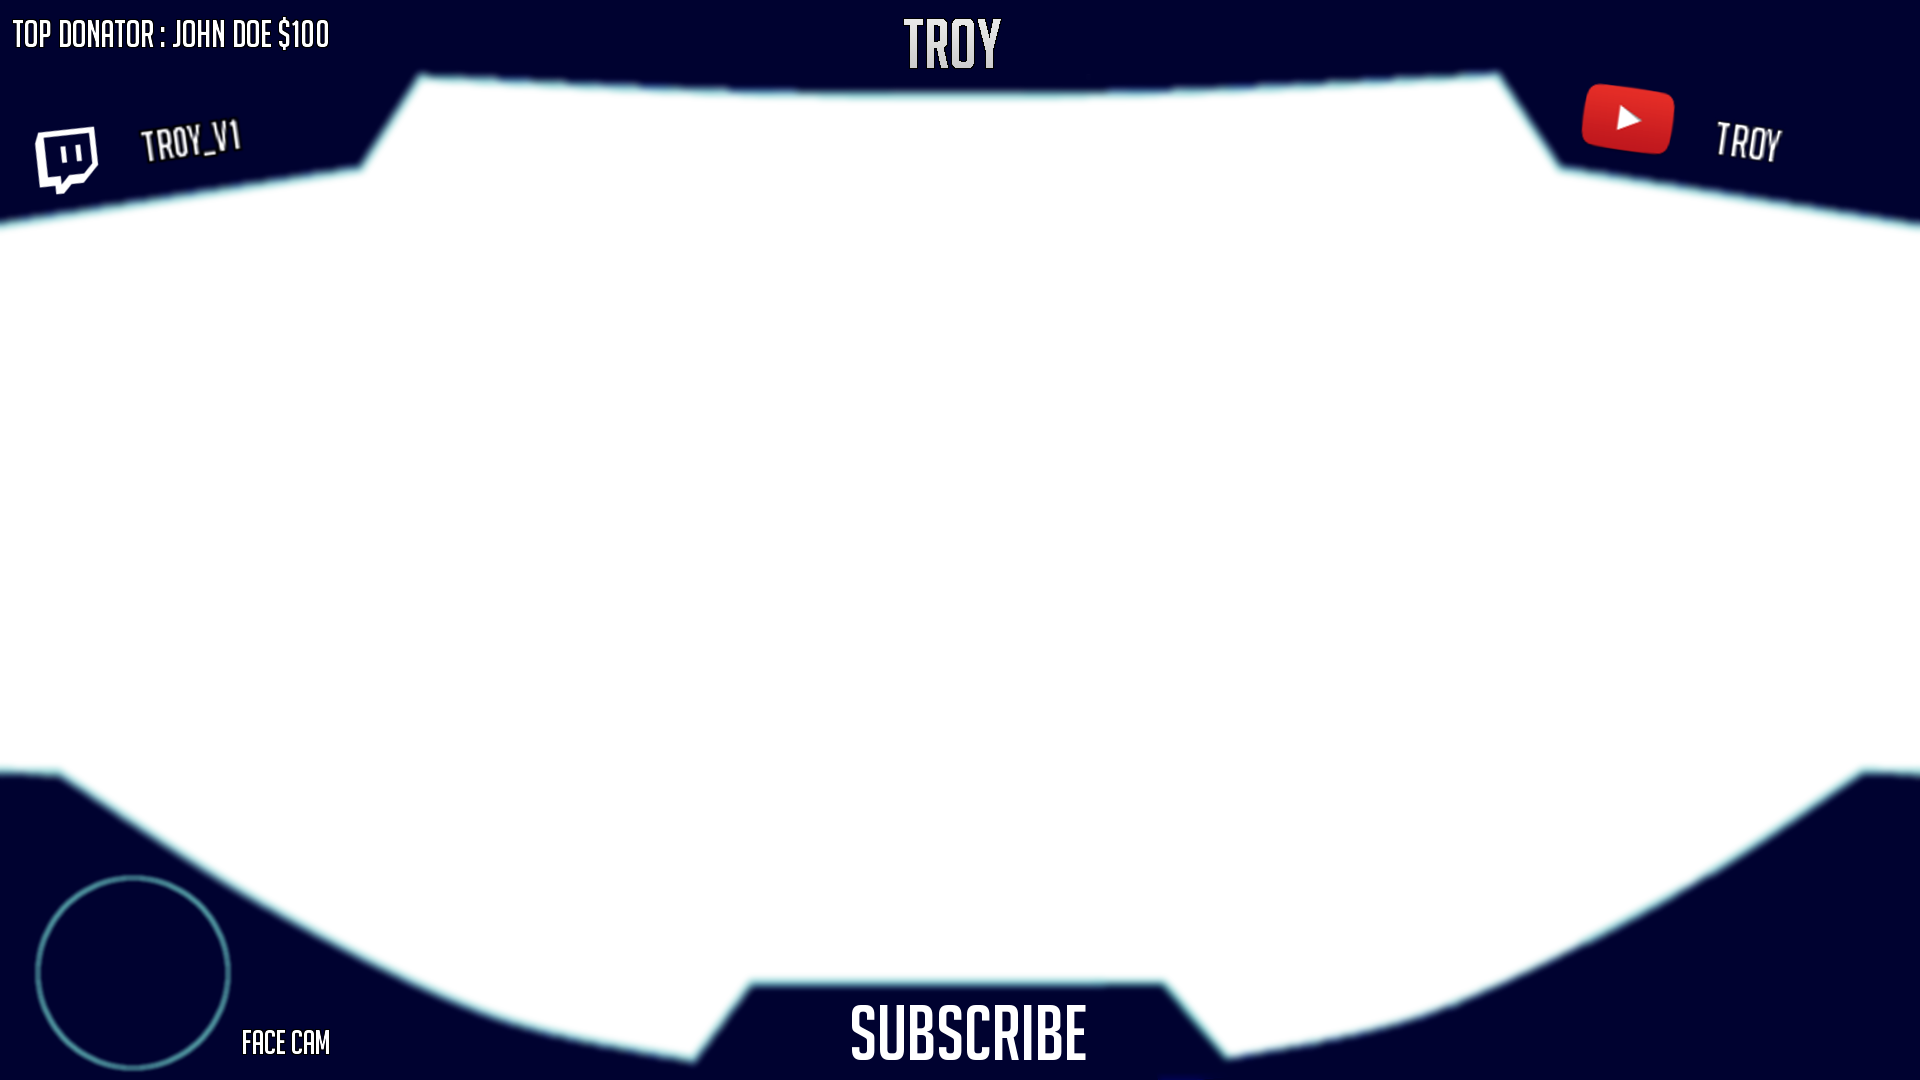 My First Twitch Overlay! - General - WeMod Community